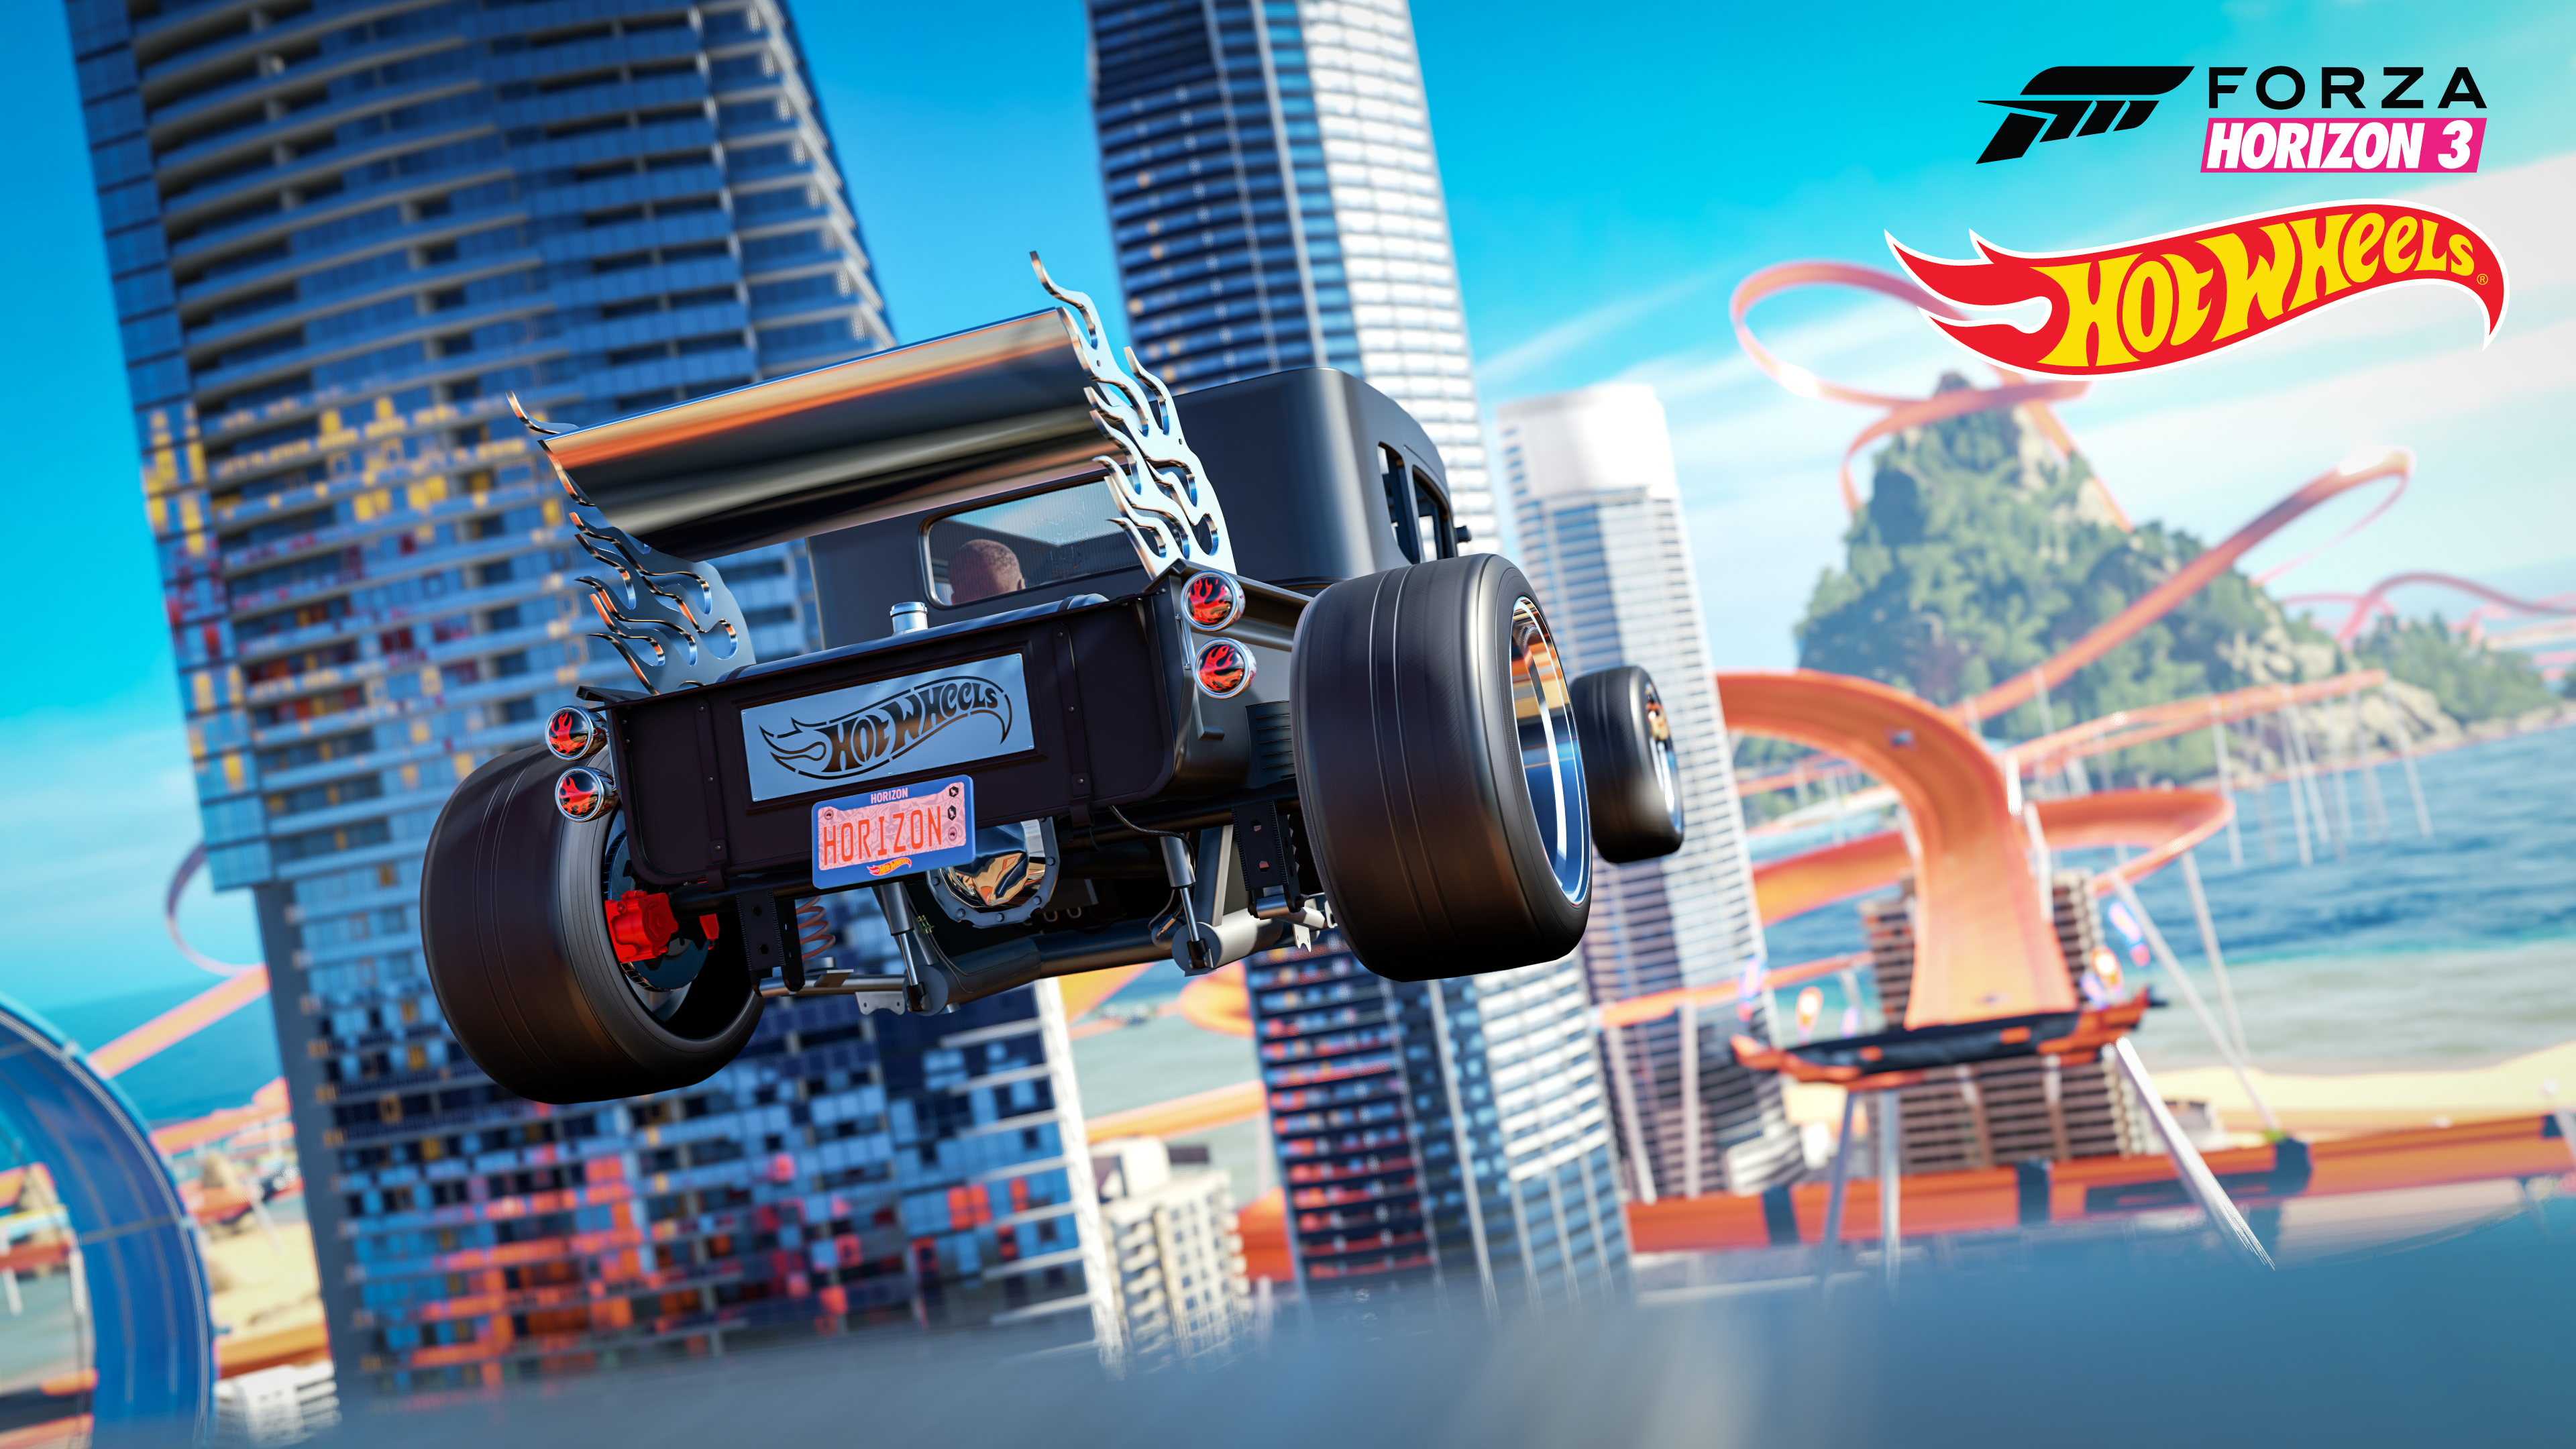 Forza Horizon 3 Hot Wheels Expansion Releases On May 9